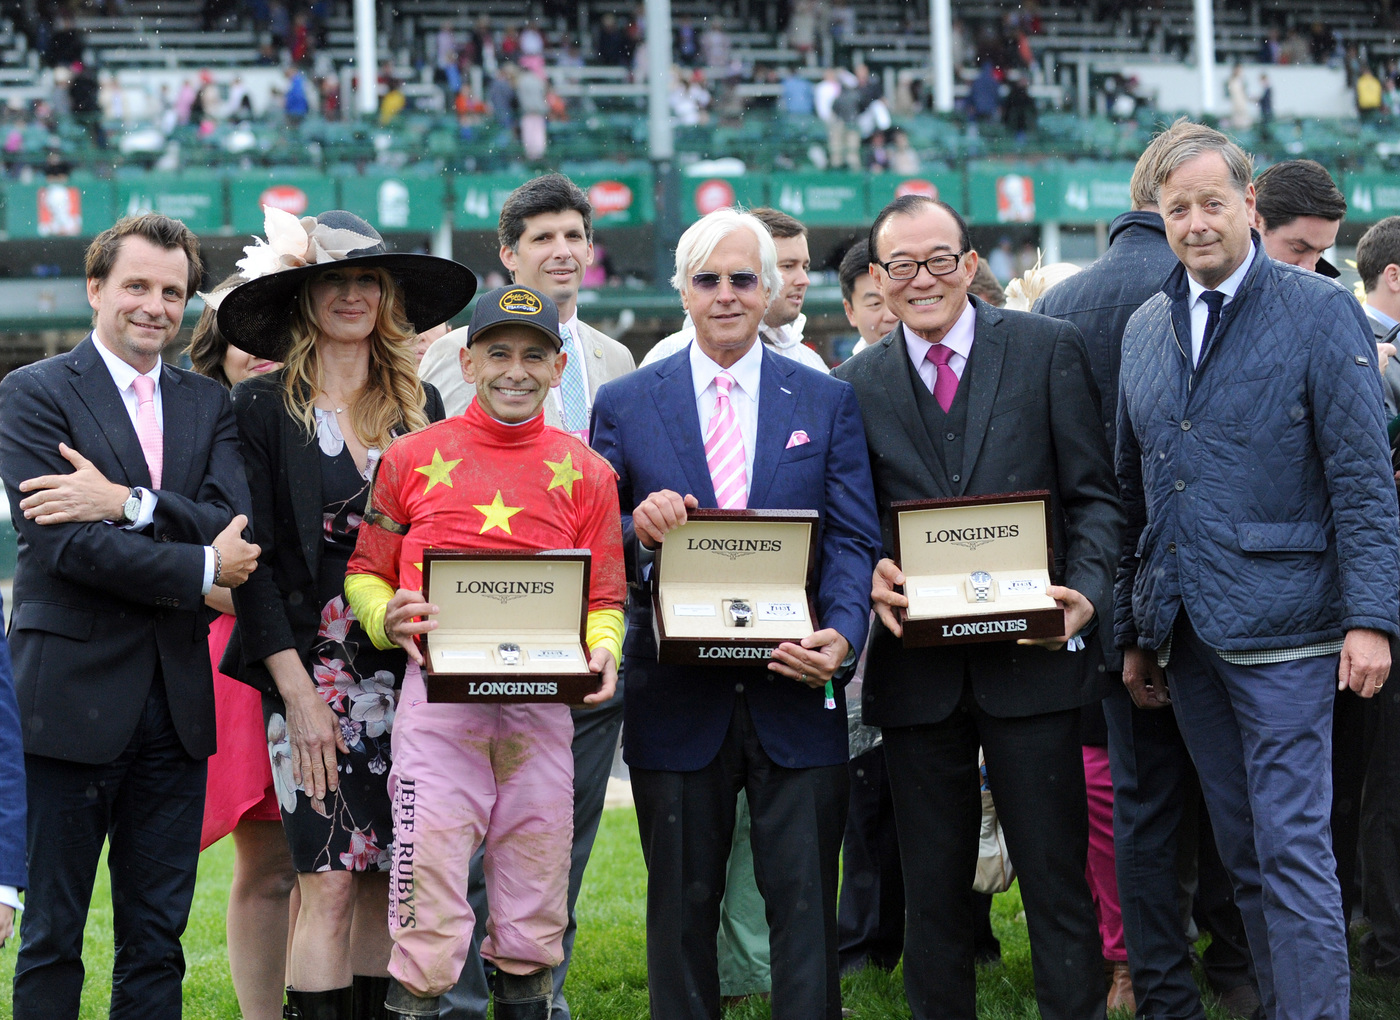 Longines Flat Racing Event: Elegance celebrated in grand style at the 143rd Longines Kentucky Oaks 9